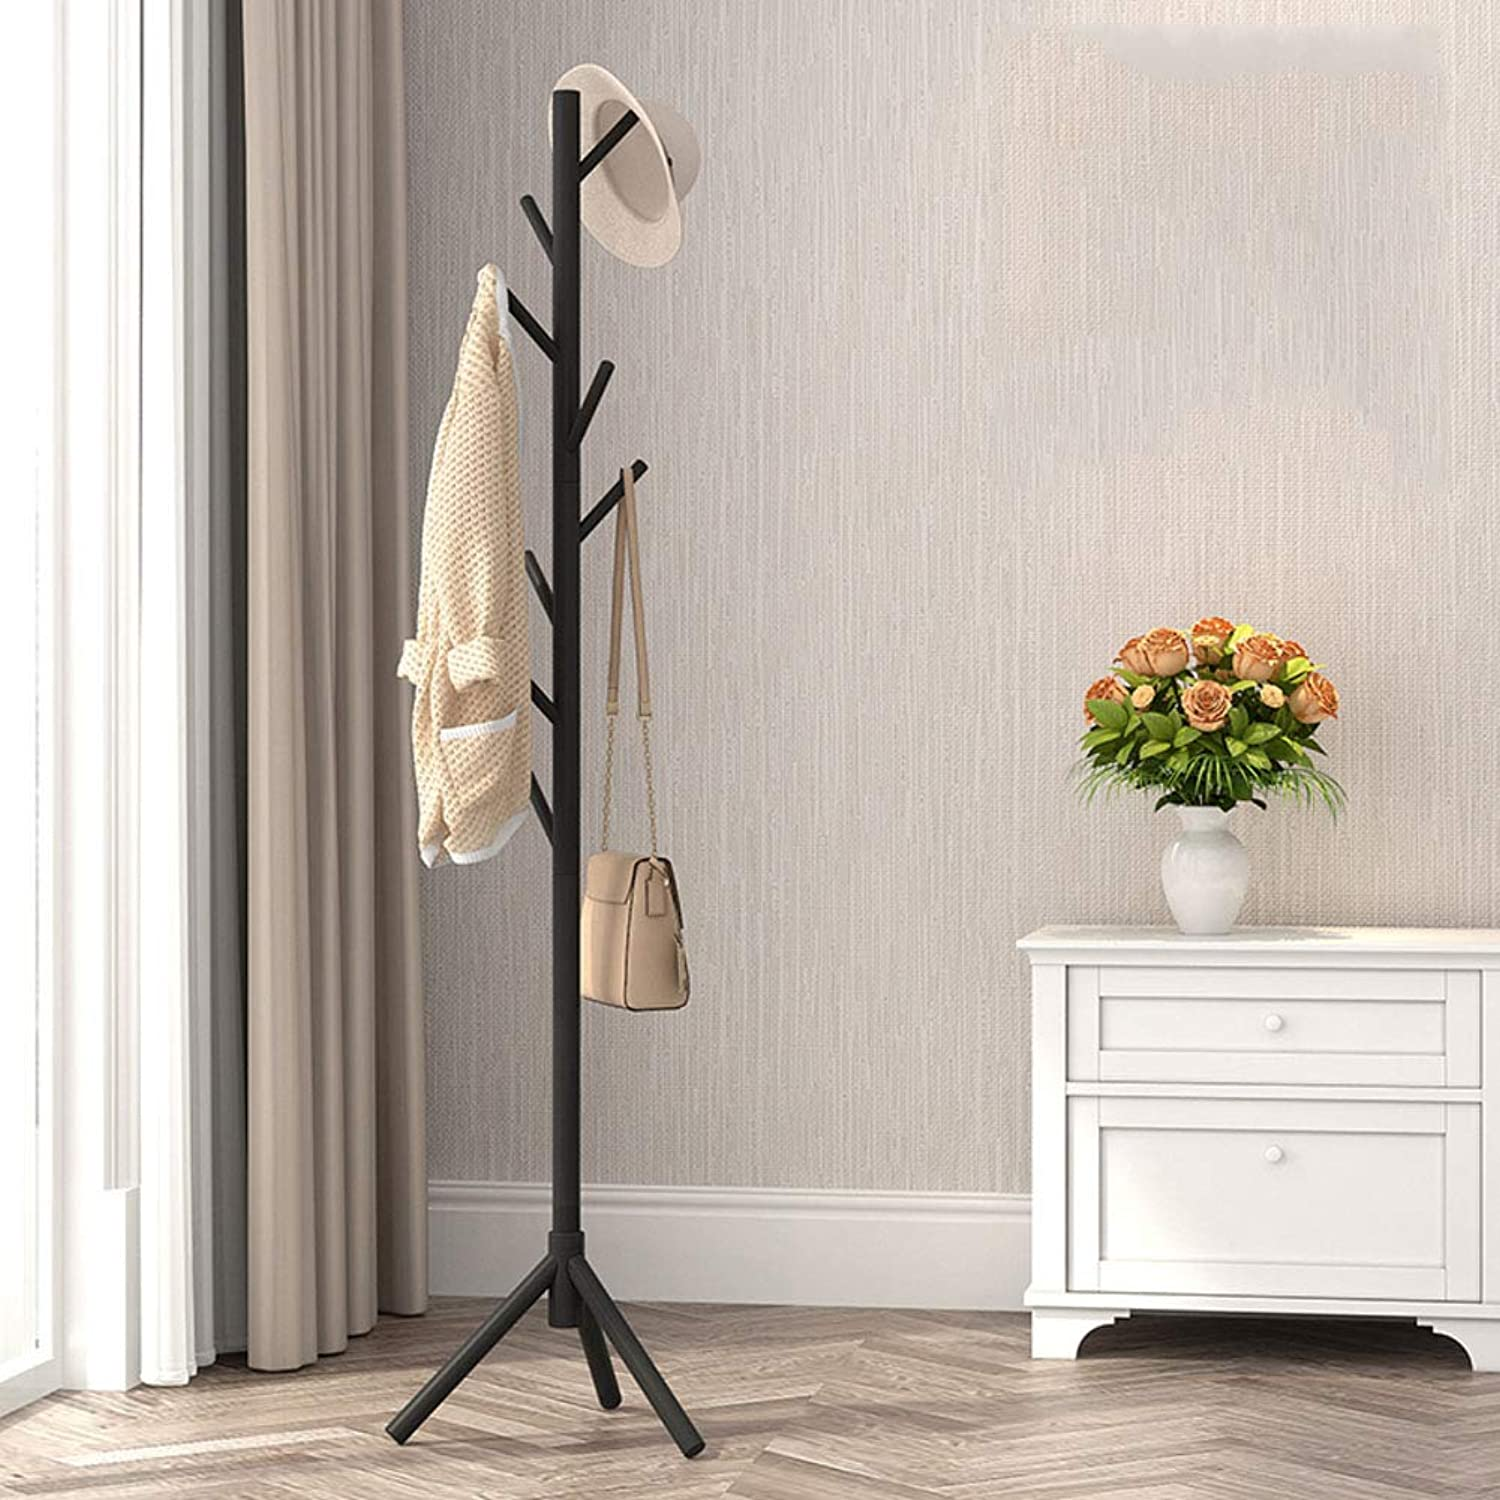 8 Hooks Coat Tree Entryway Standing for Clothes,Solid Wood Coat Rack Stand,for Jacket Purse Scarf Rack-B 45x172cm(18x68inch)